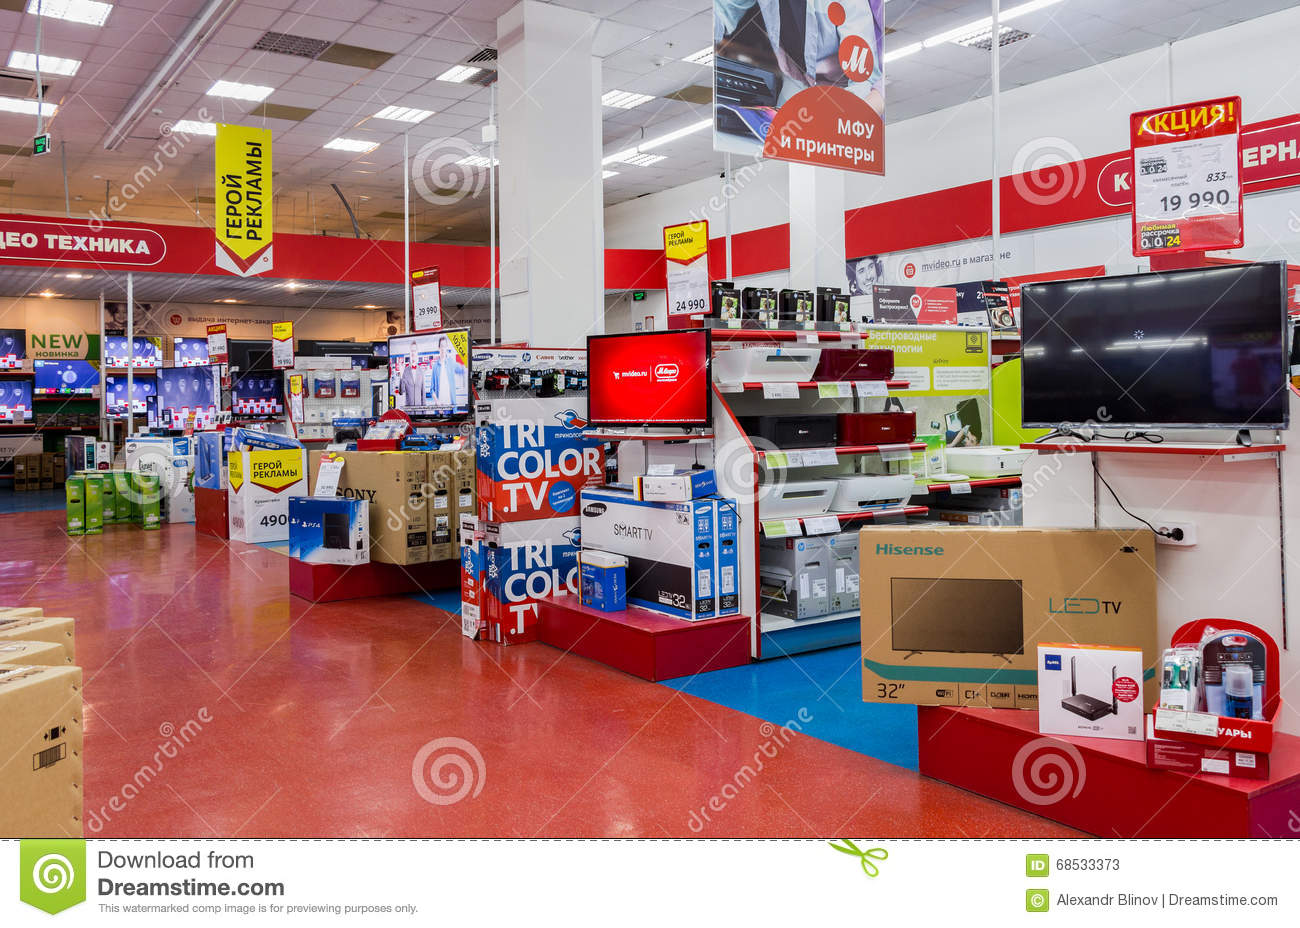 https://thumbs.dreamstime.com/z/interior-electronics-shop-m-video-samara-russia-march-largest-russian-consumer-electronic-retail-chain-68533373.jpg